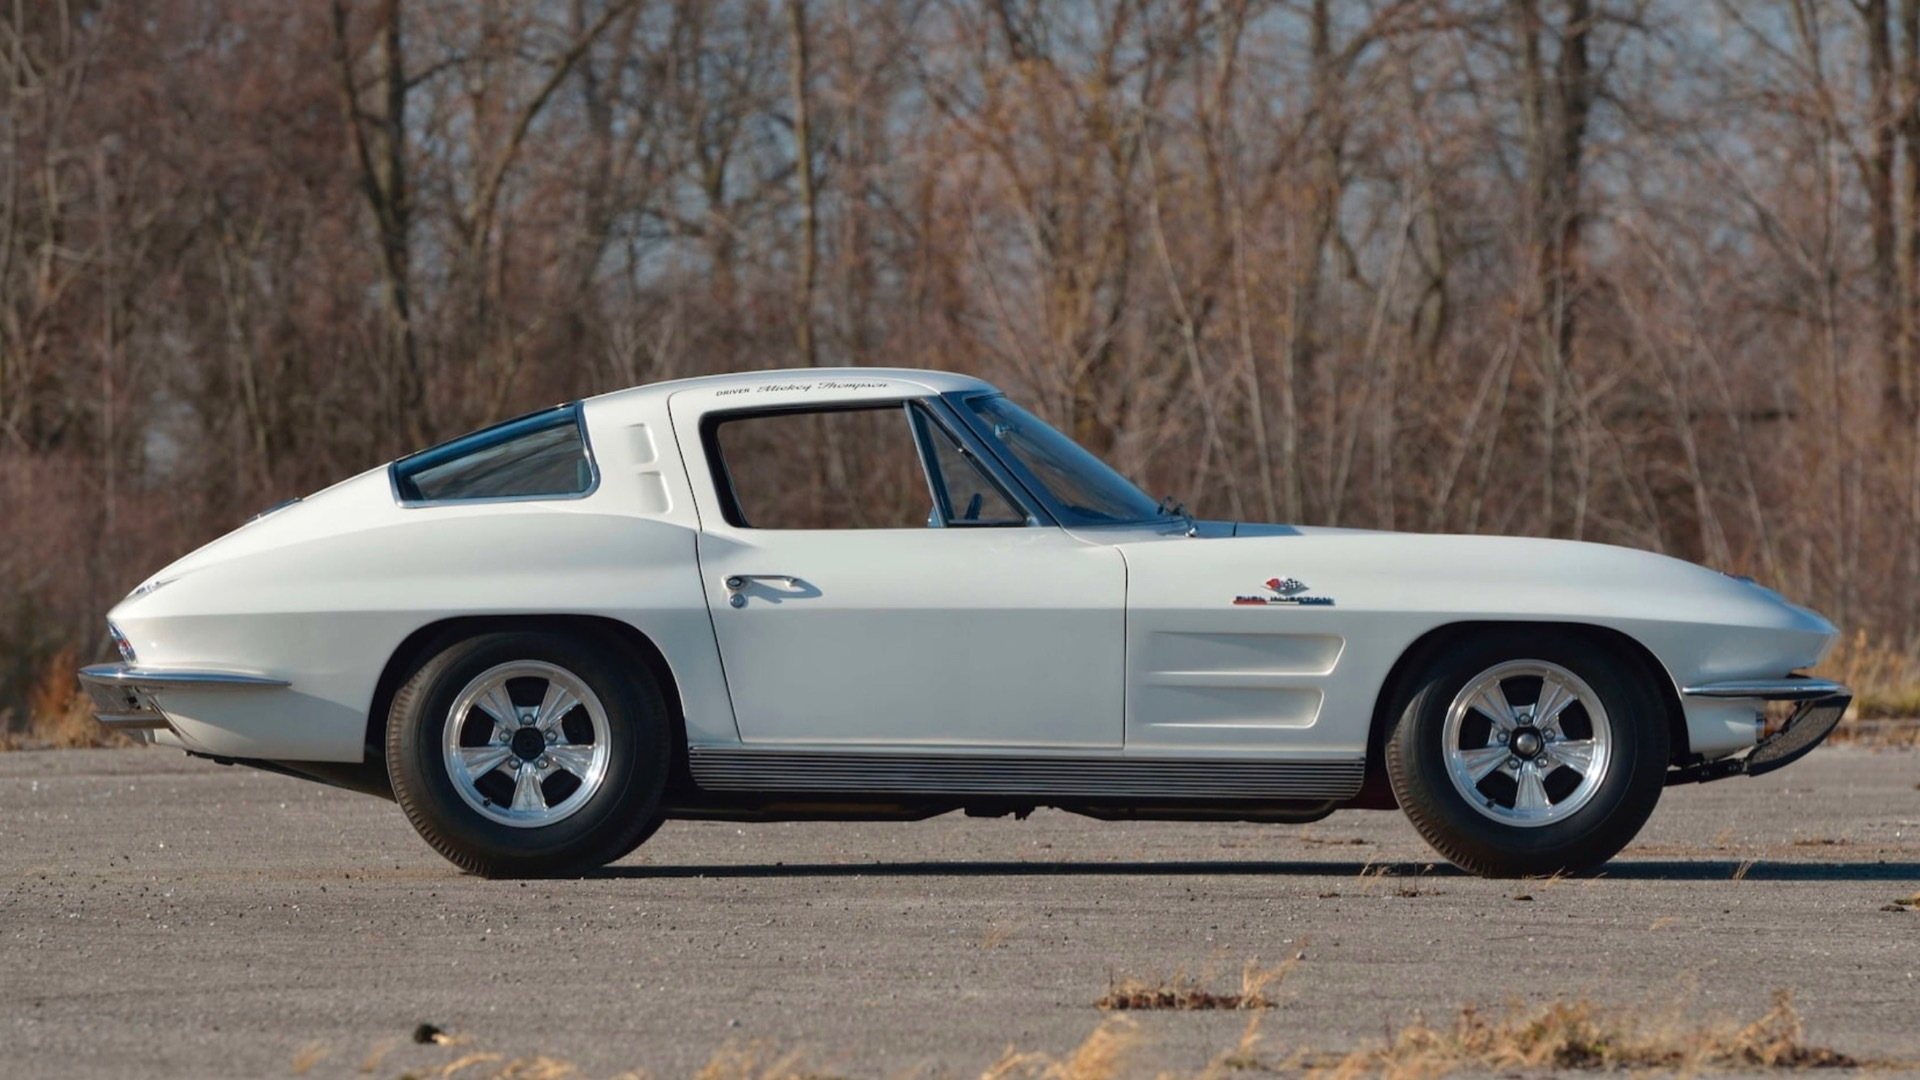 1963 Corvette Chevrolet Corvette Z06 owned by Mickey Thompson (Photo by Mecum Auctions)